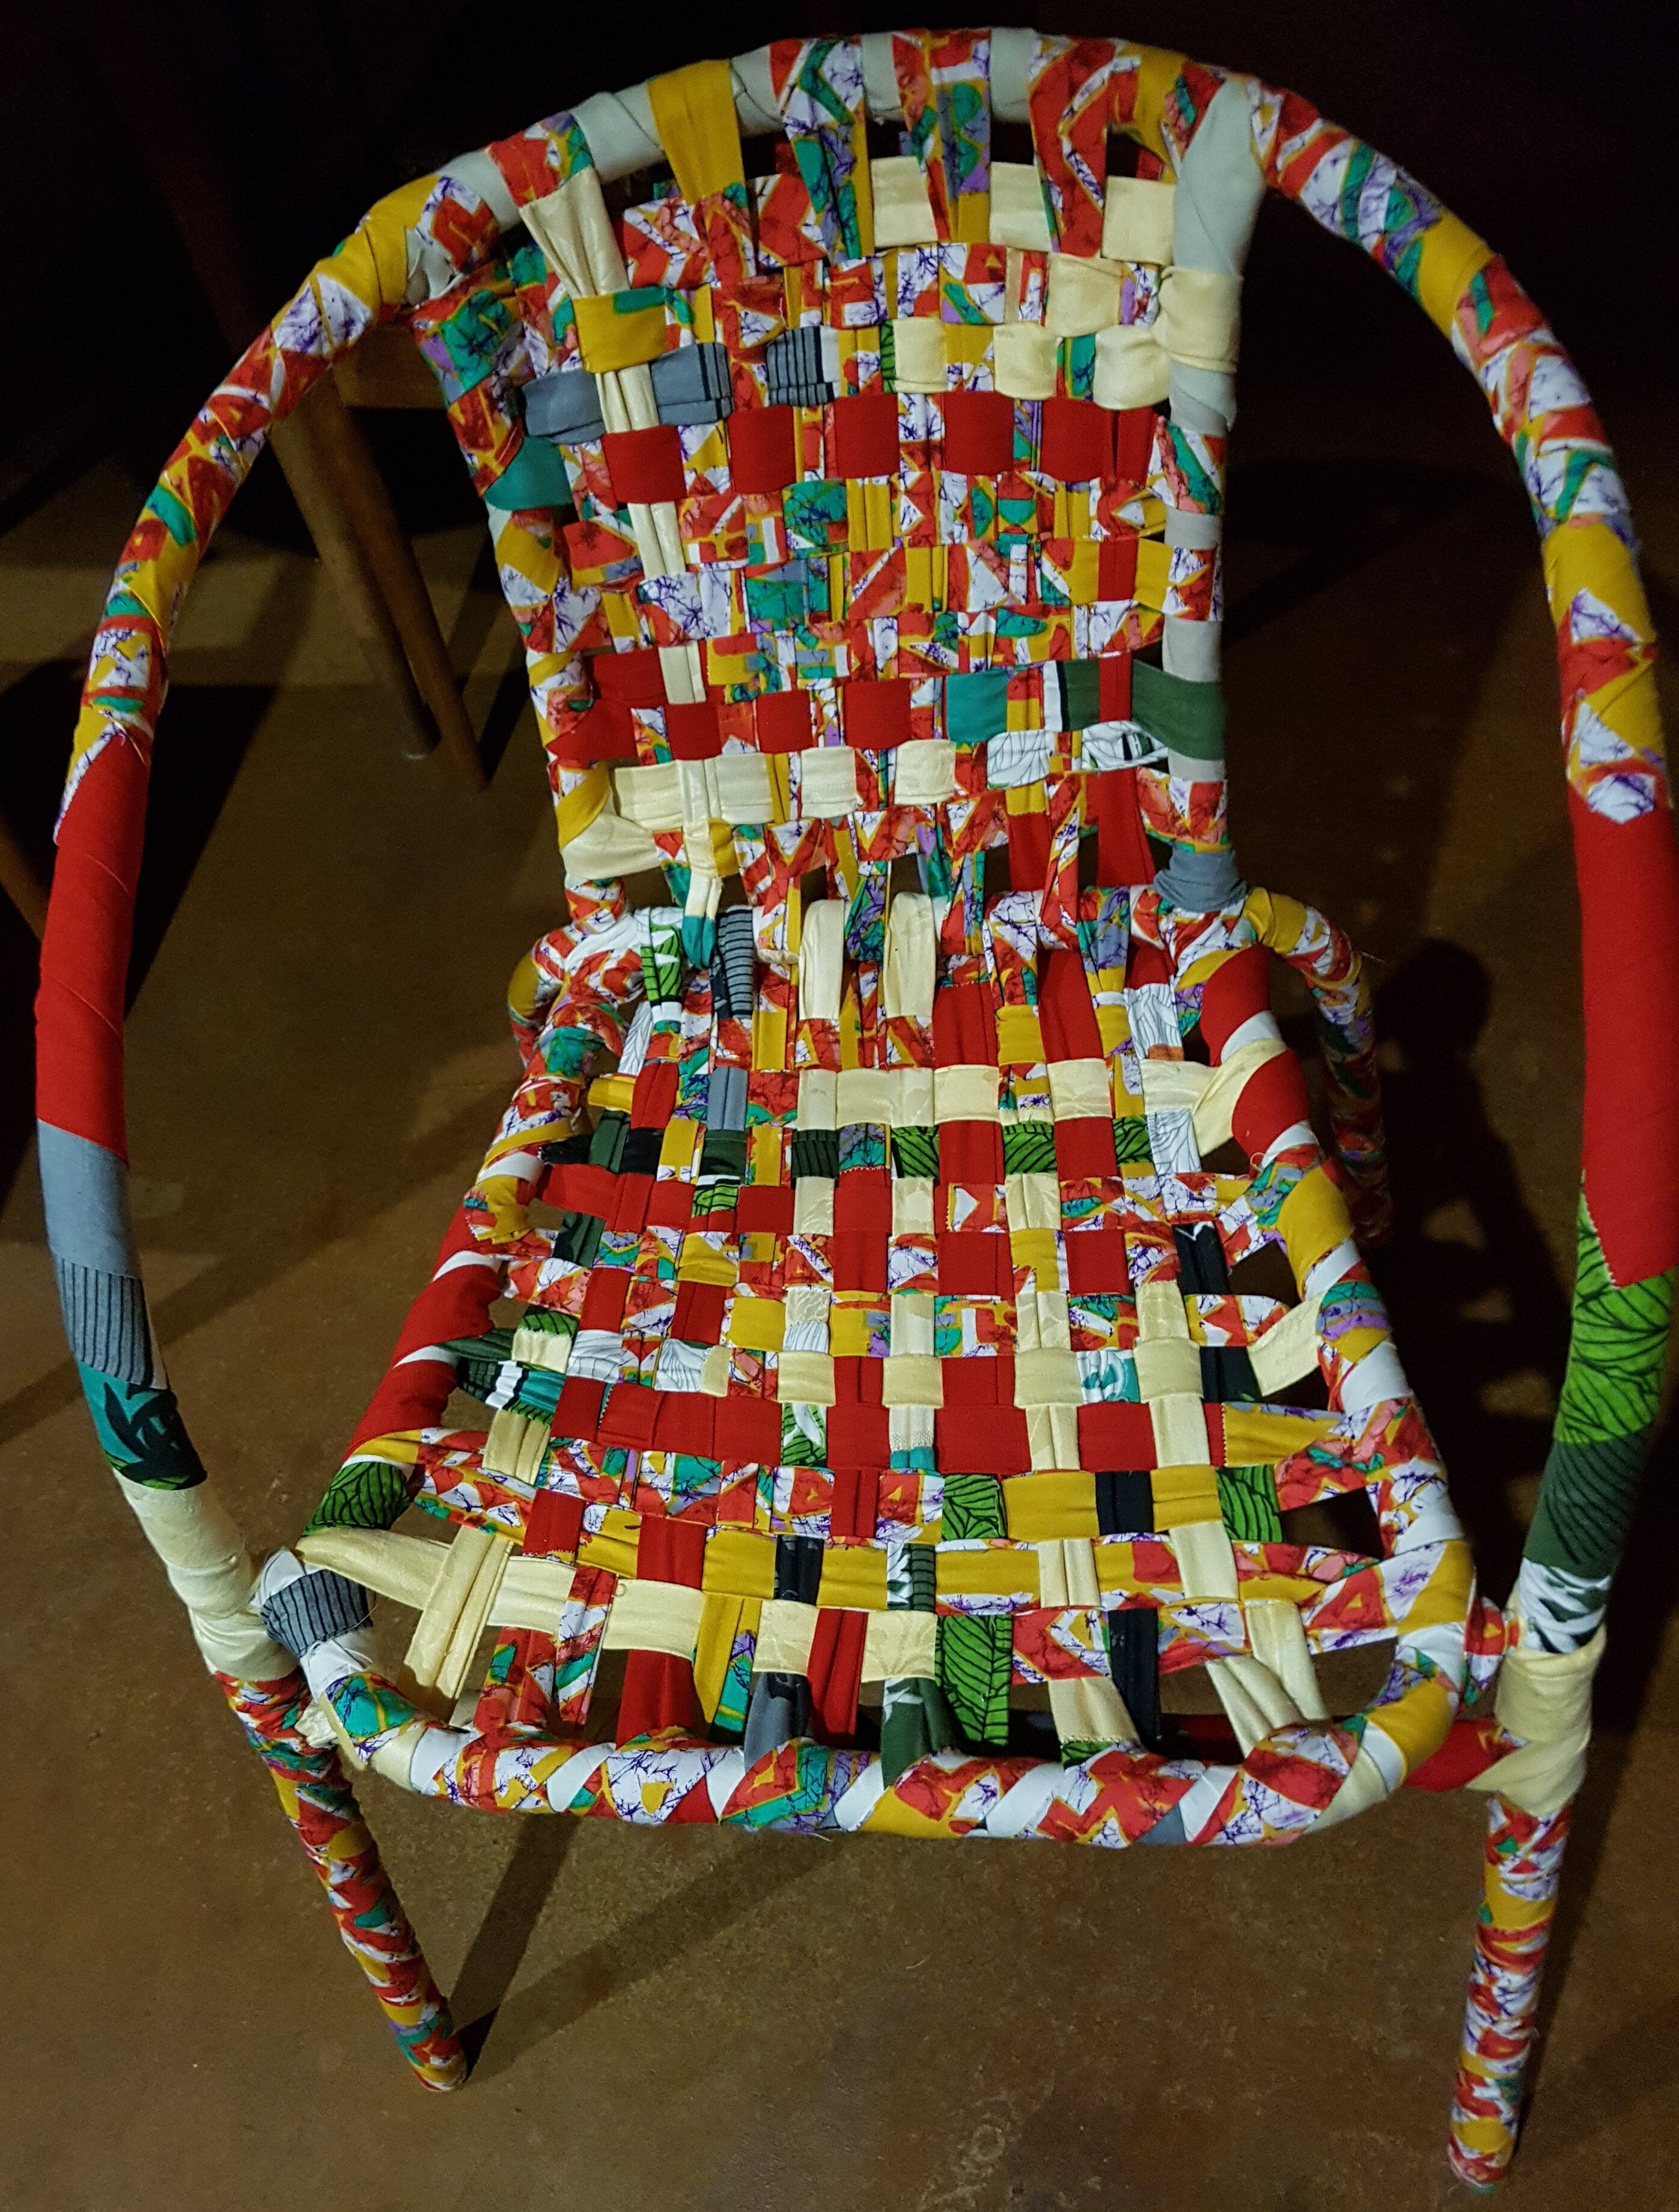 Cheerful Chair 1, Jean McArthur, steel frame, recycled fabric, 2018[5311]